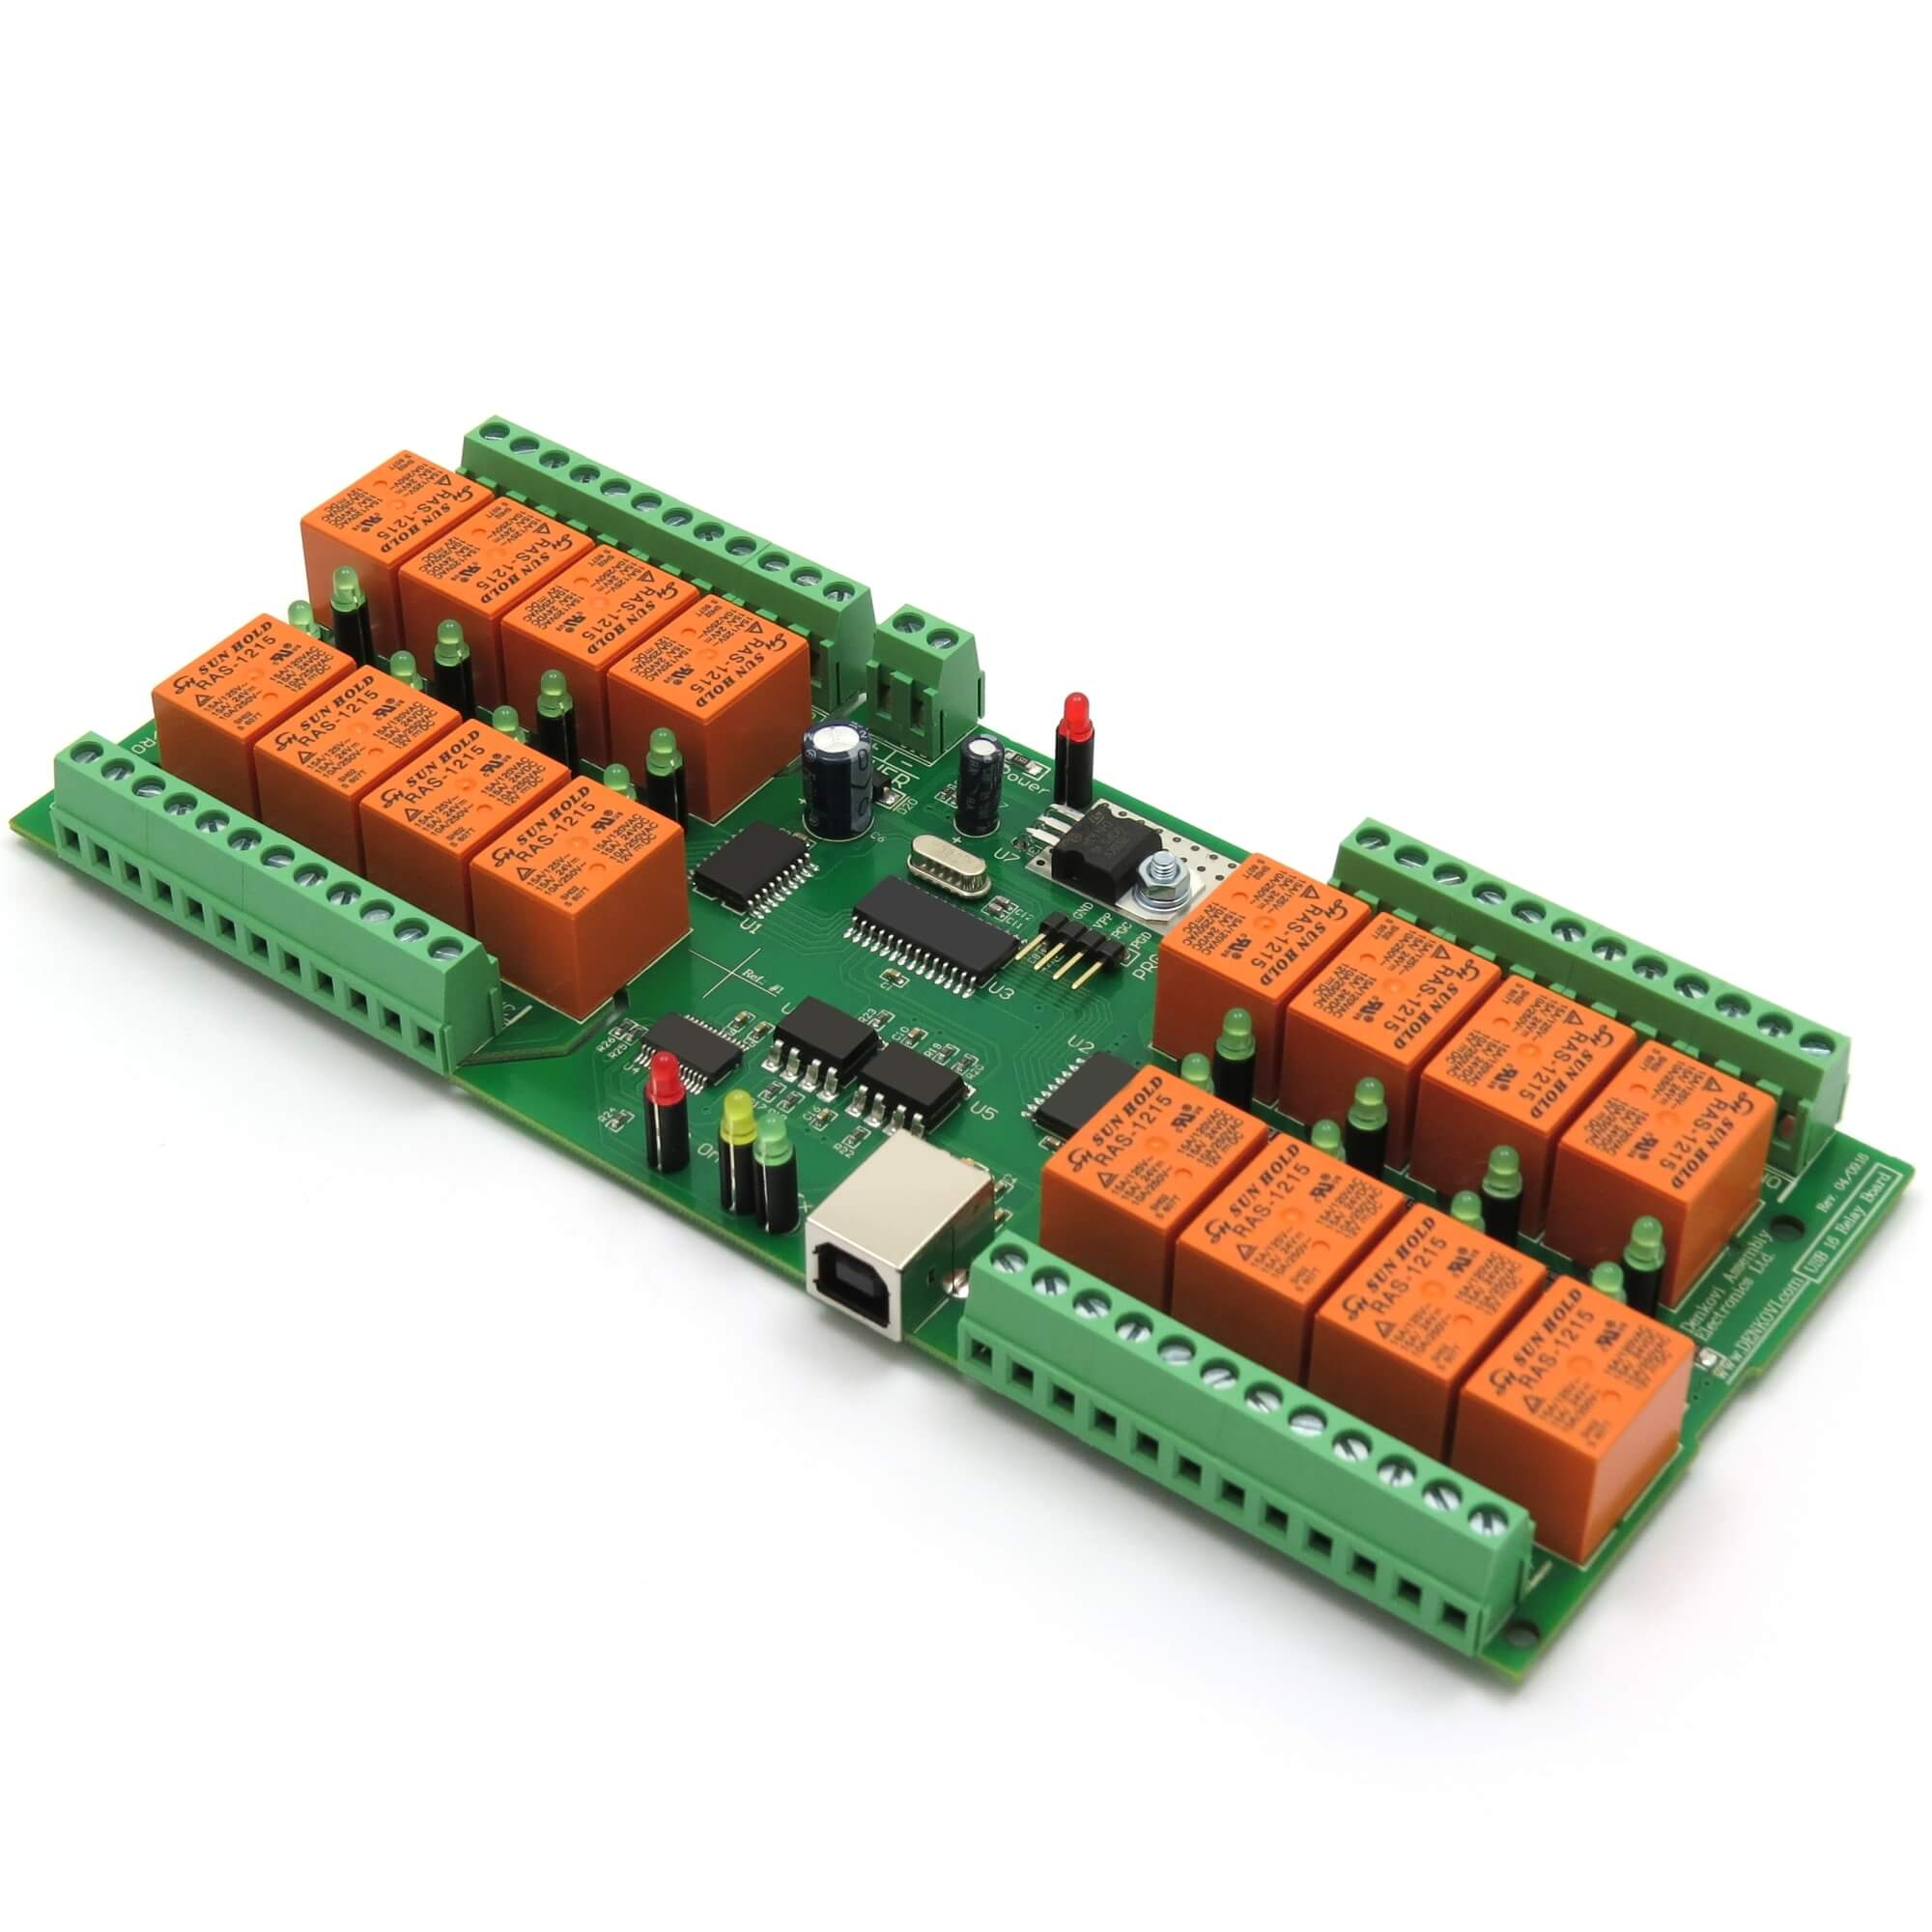 Details about USB Relay Controller 16 Channels - Virtual Serial /COM/ Port,  optical isolation